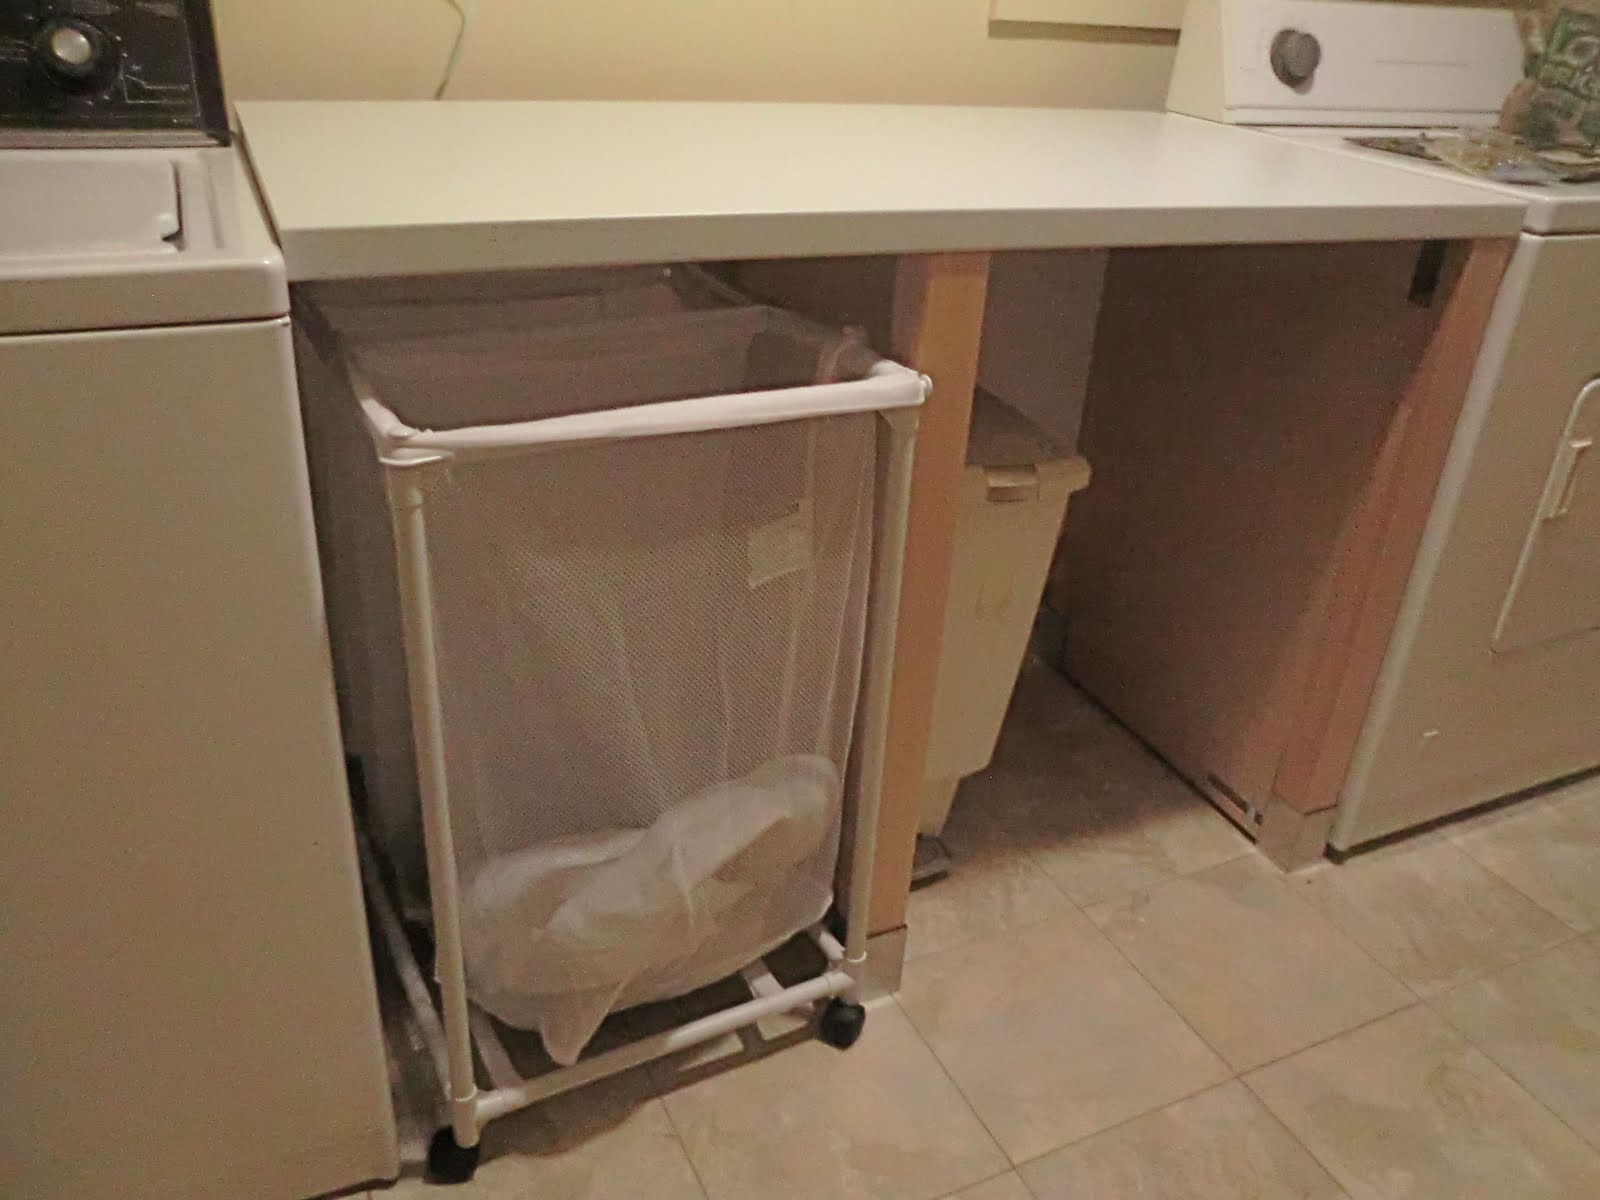 Laundry Countertop Materials : HOME: Laundry folding station out of a dishwasher cabinet